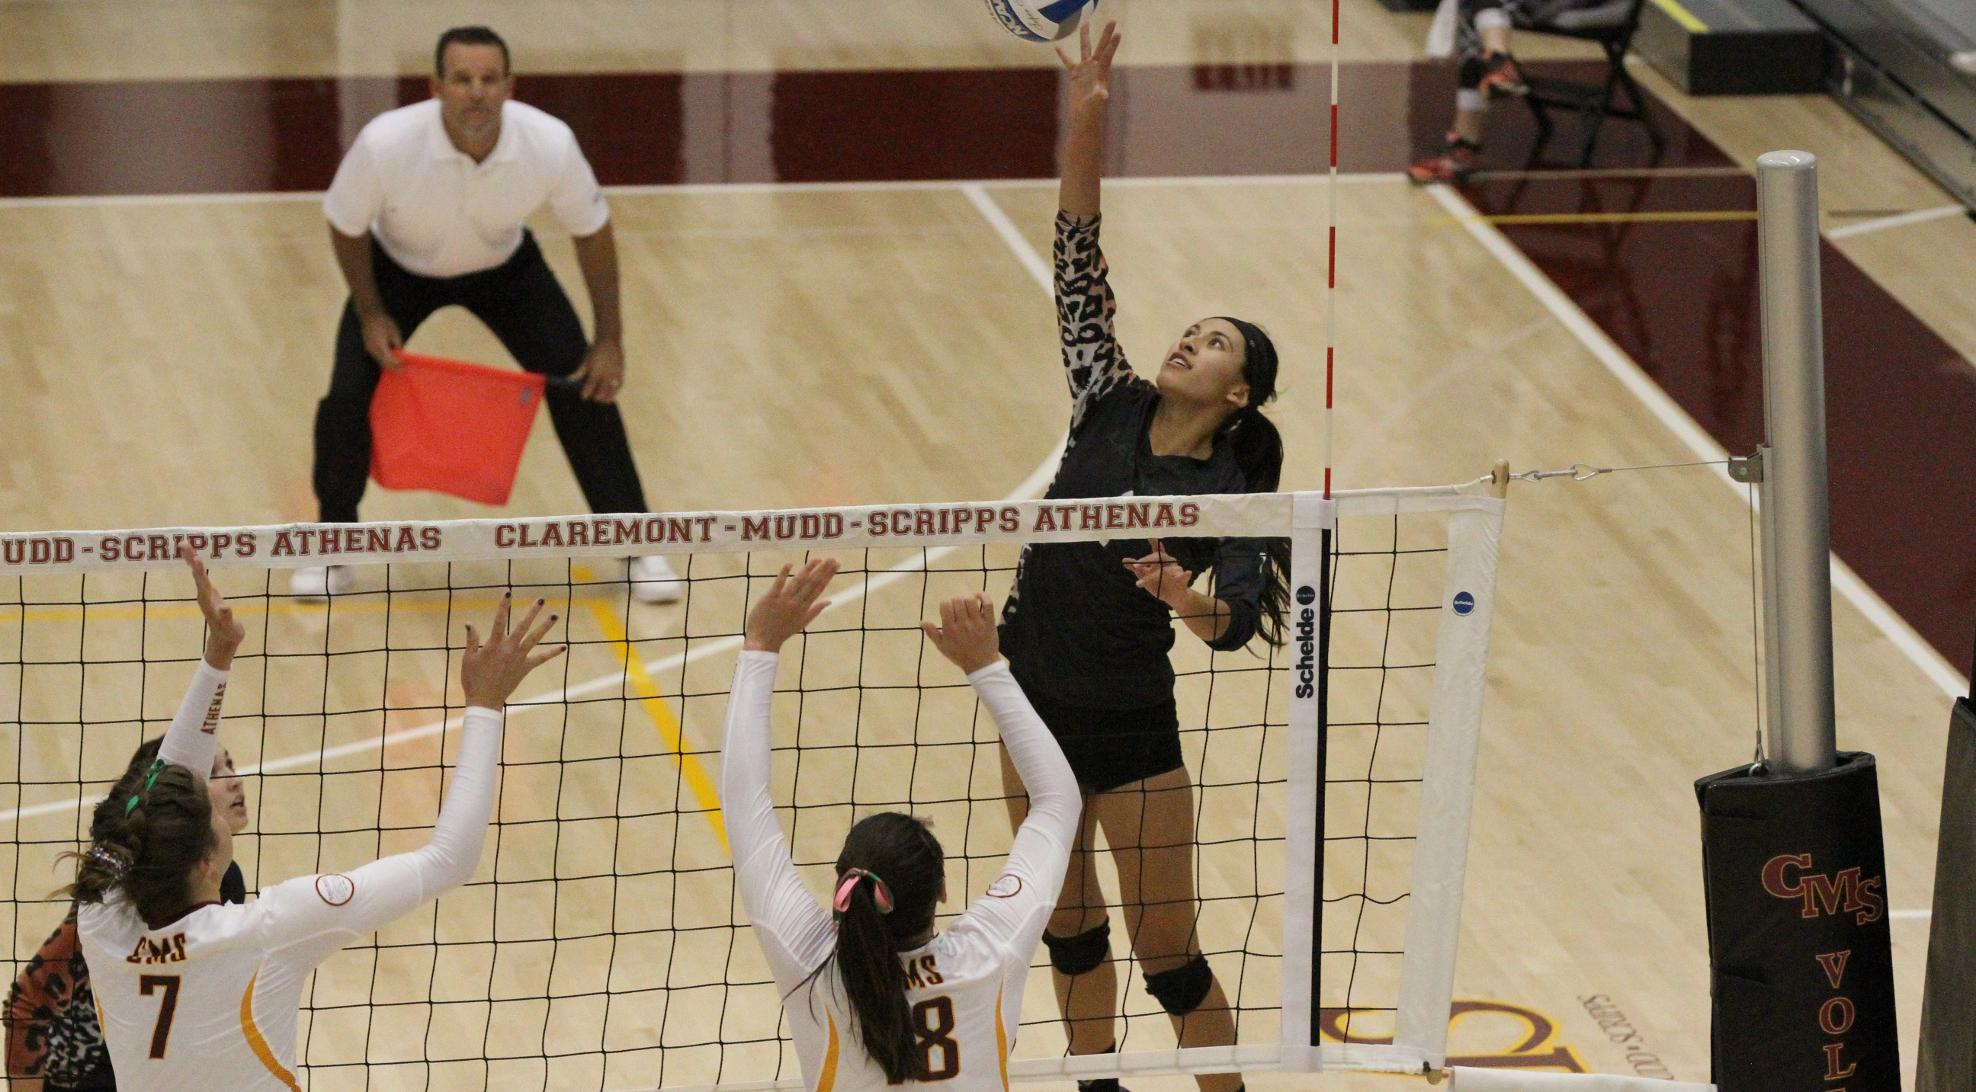 No. 22 Volleyball cruises past Caltech